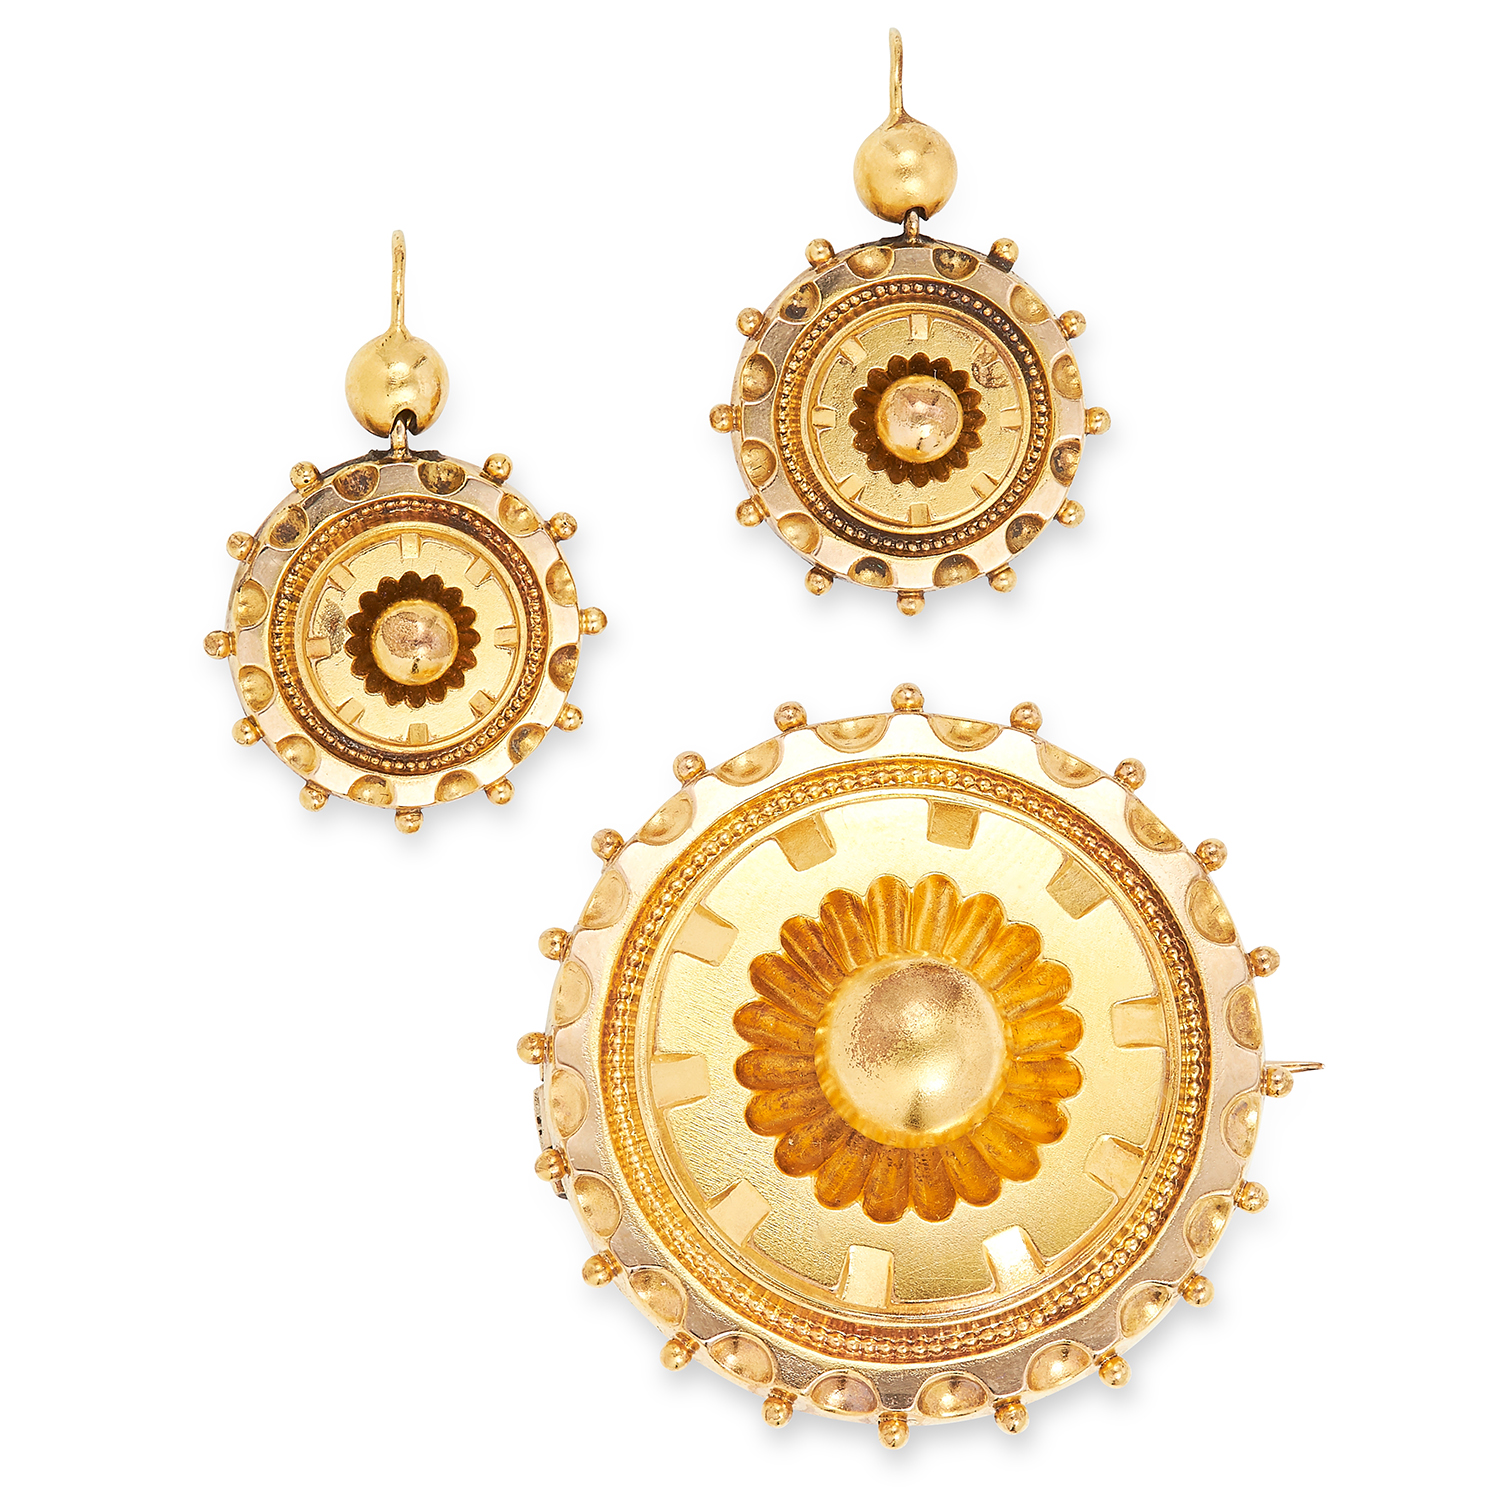 Los 8 - ANTIQUE MOURNING BROOCH AND EARRINGS SUITE, 19TH CENTURY circular design with geometric accents, the